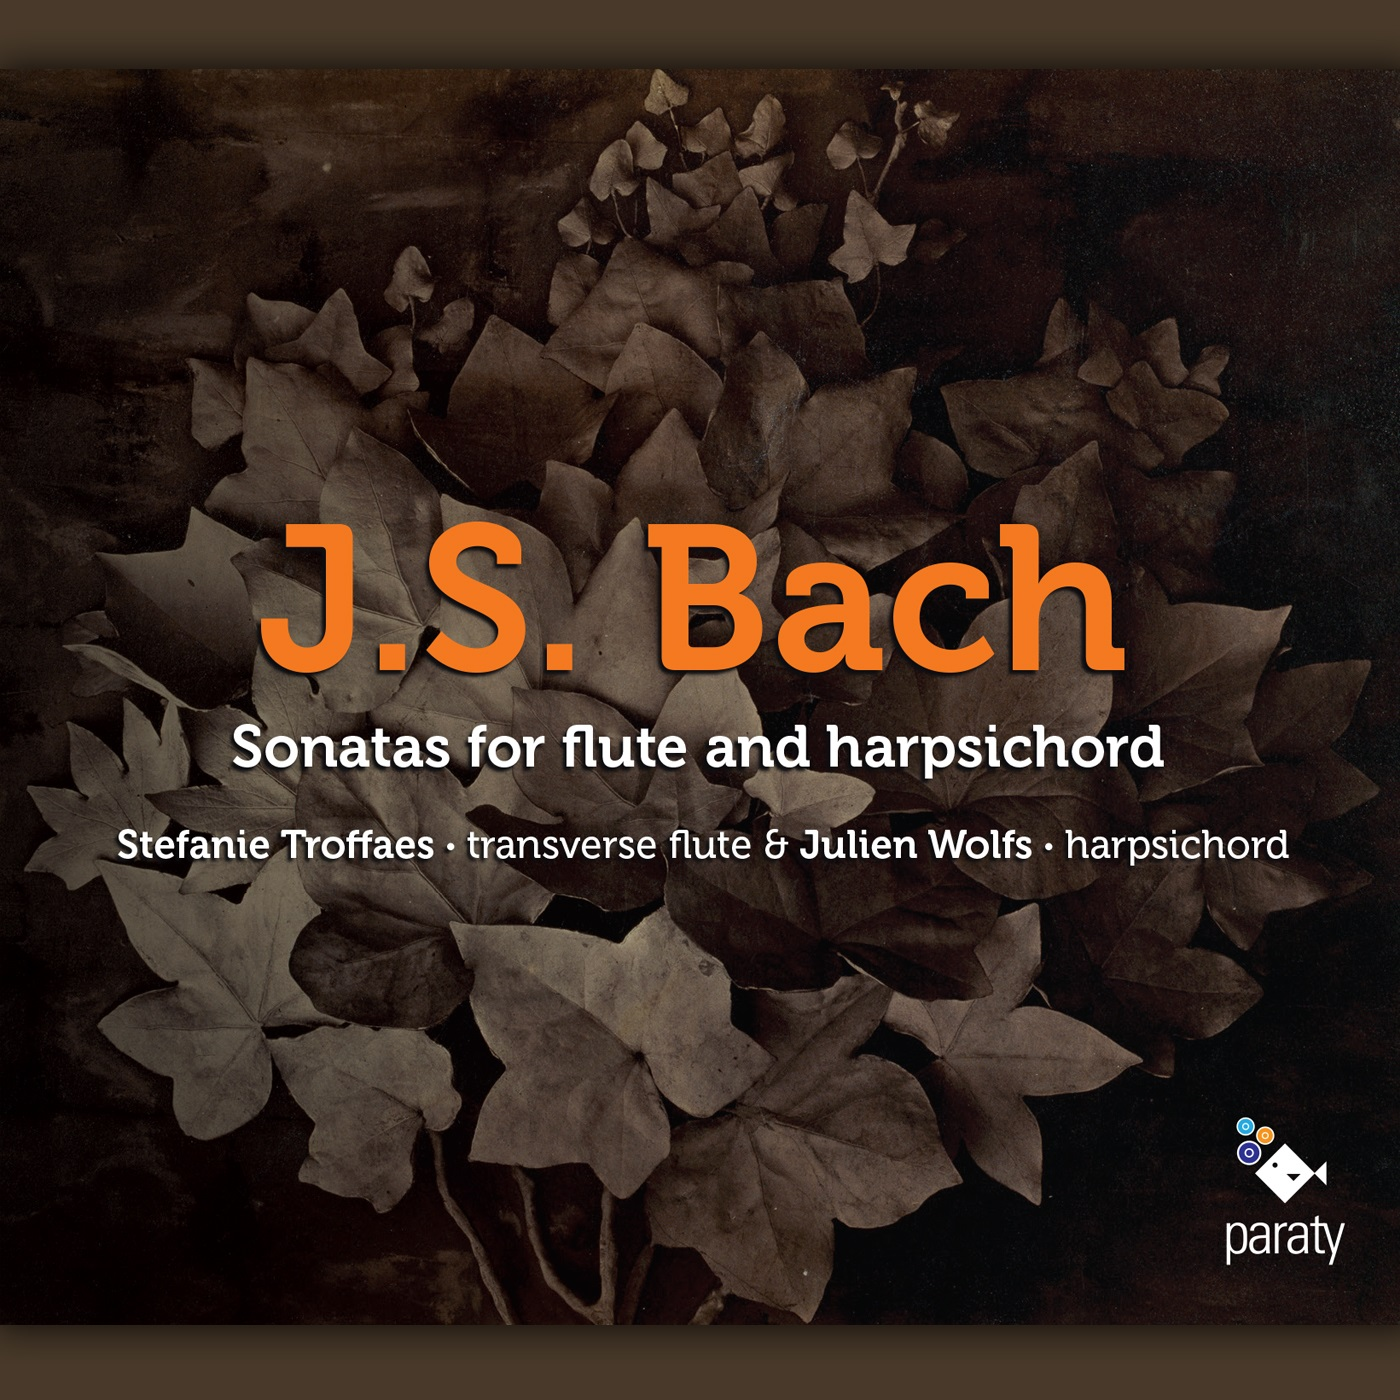 J.S.Bach, Sonatas for flute and harpsichord